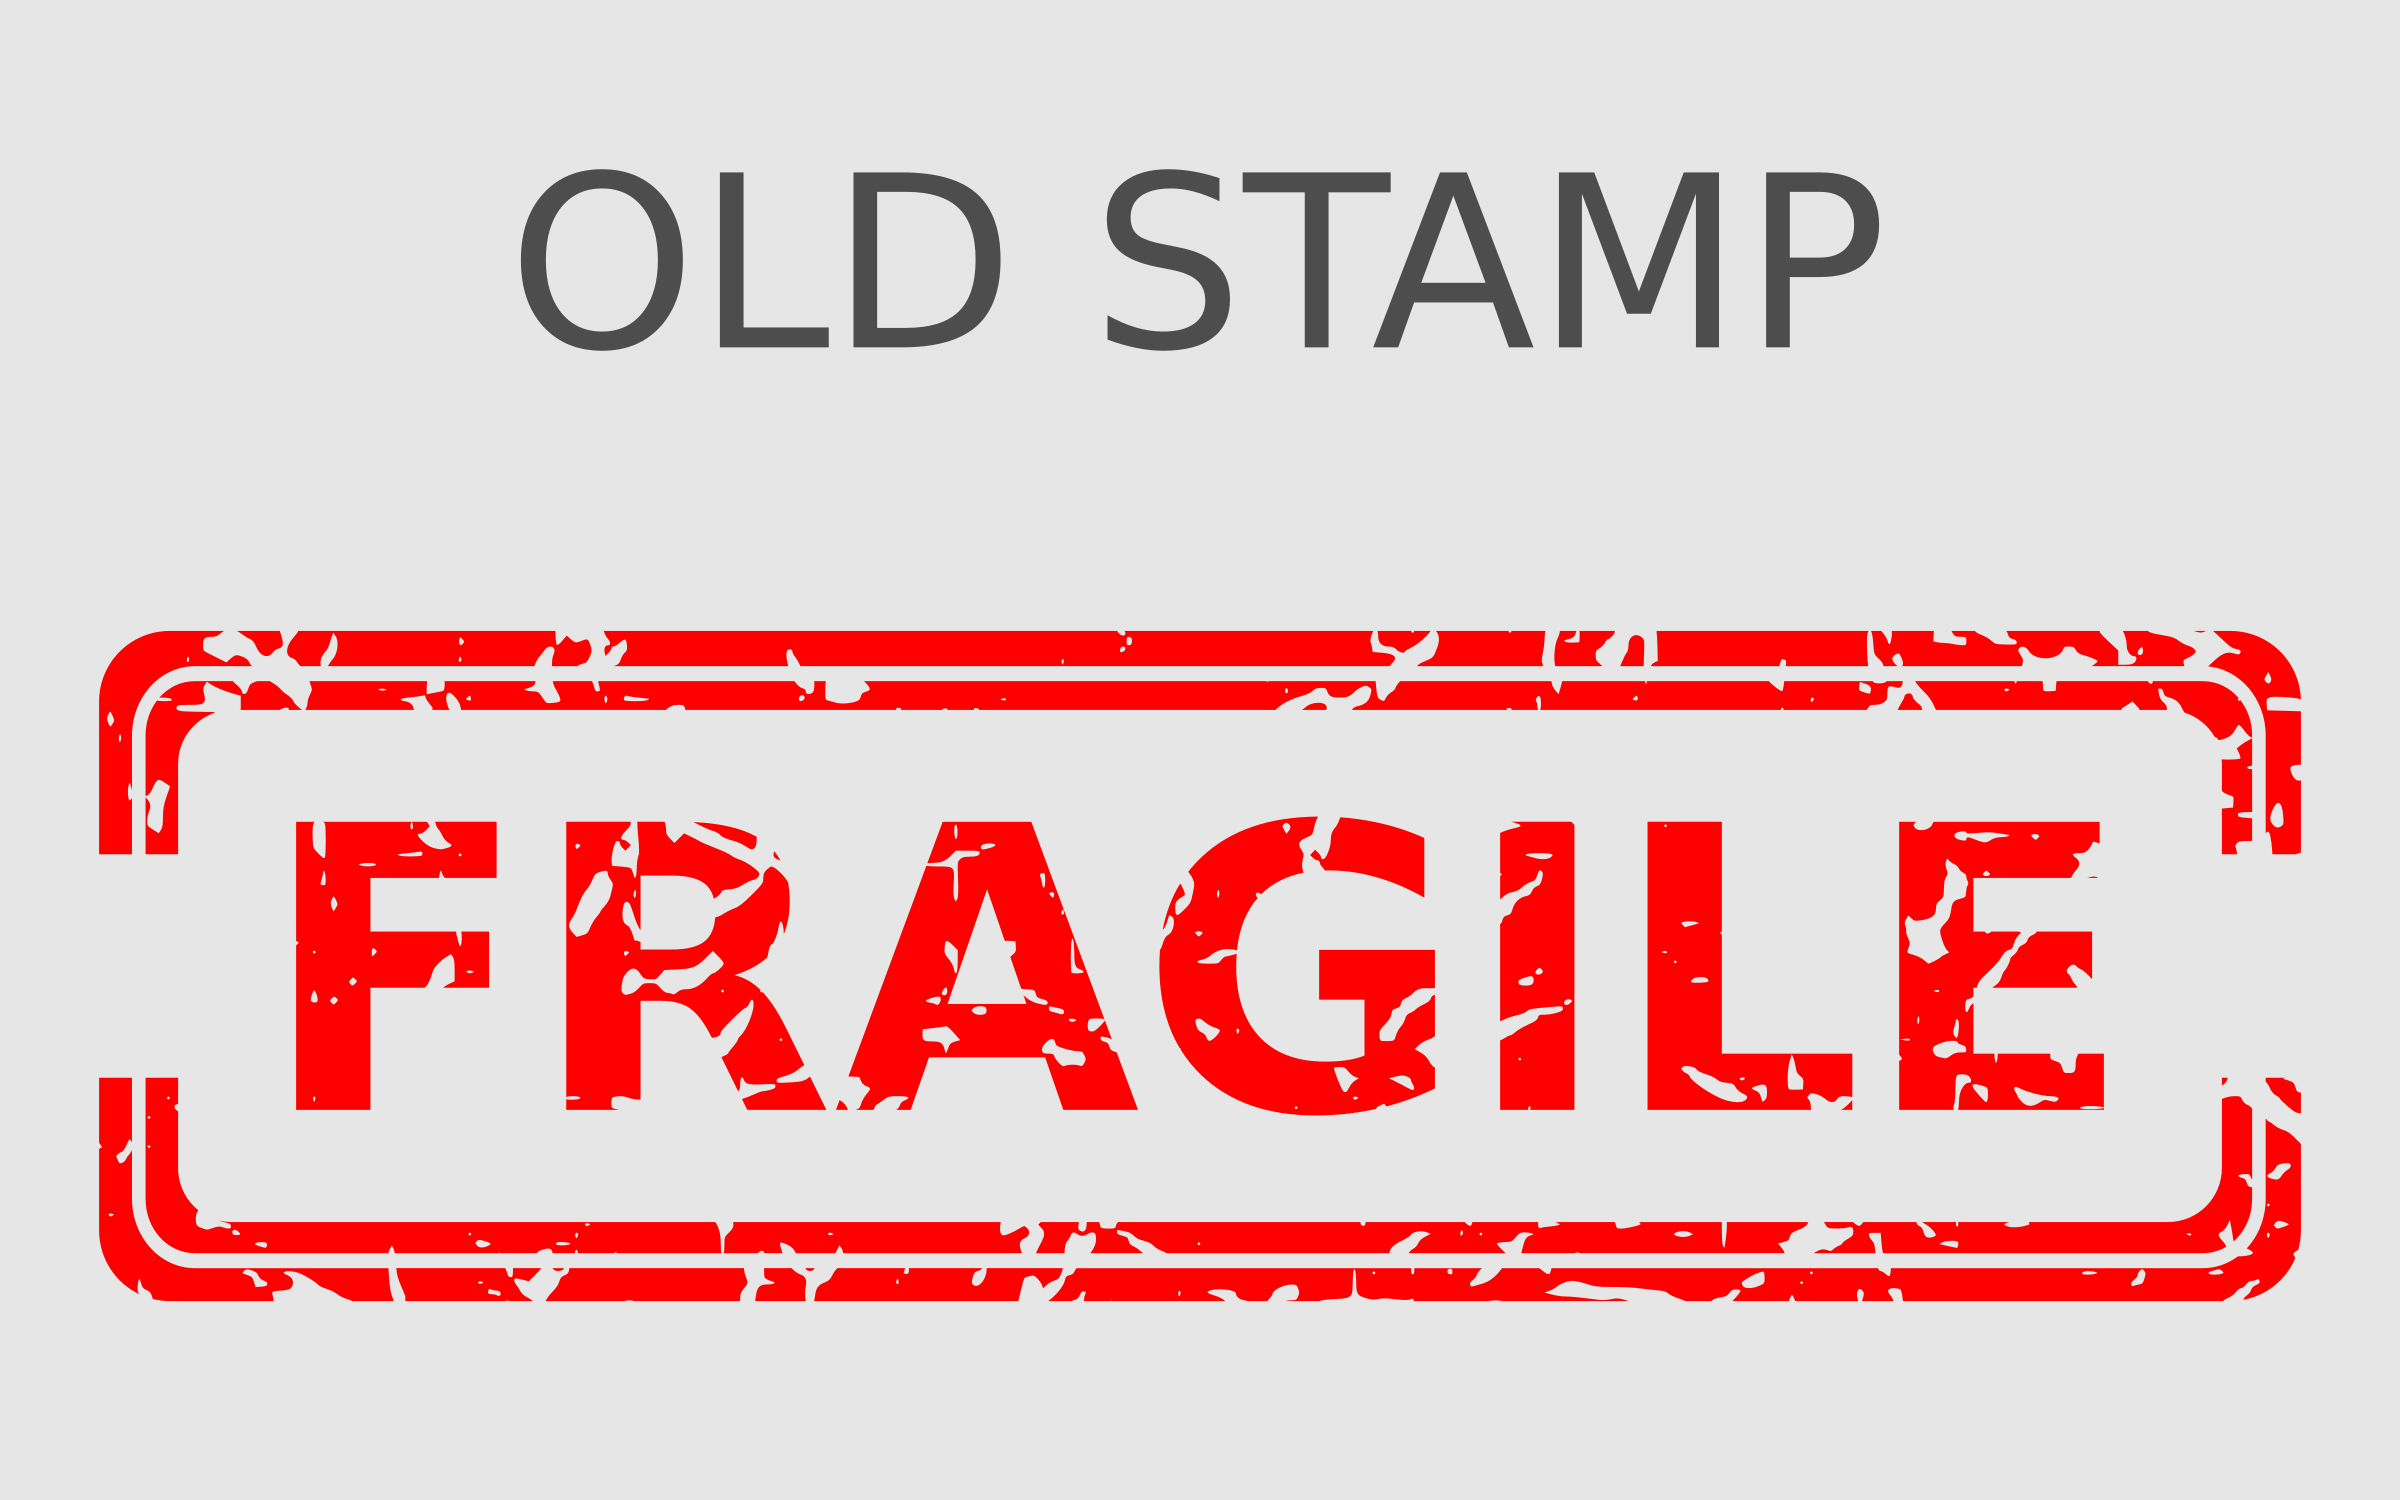 Old stamp by Officina